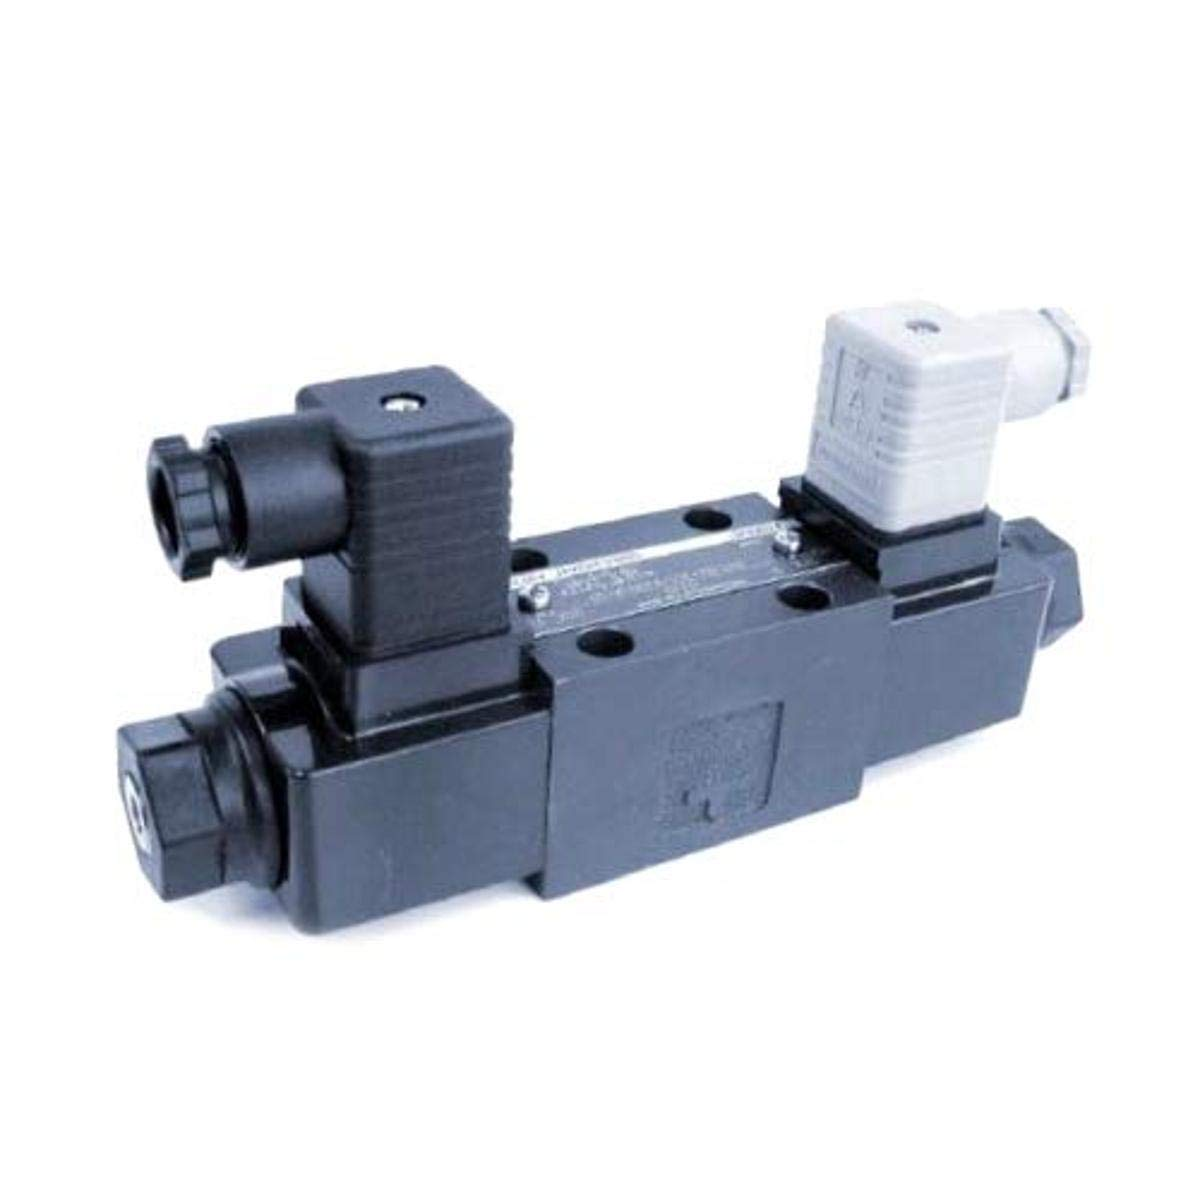 Ltd Yuken Kogyo Co Plug-in Connector Spring Offset Spool Type 4 DSG-01-2B4B-D12-N-7090 1//8 Solenoid Operated Directional Valve D12 Coil